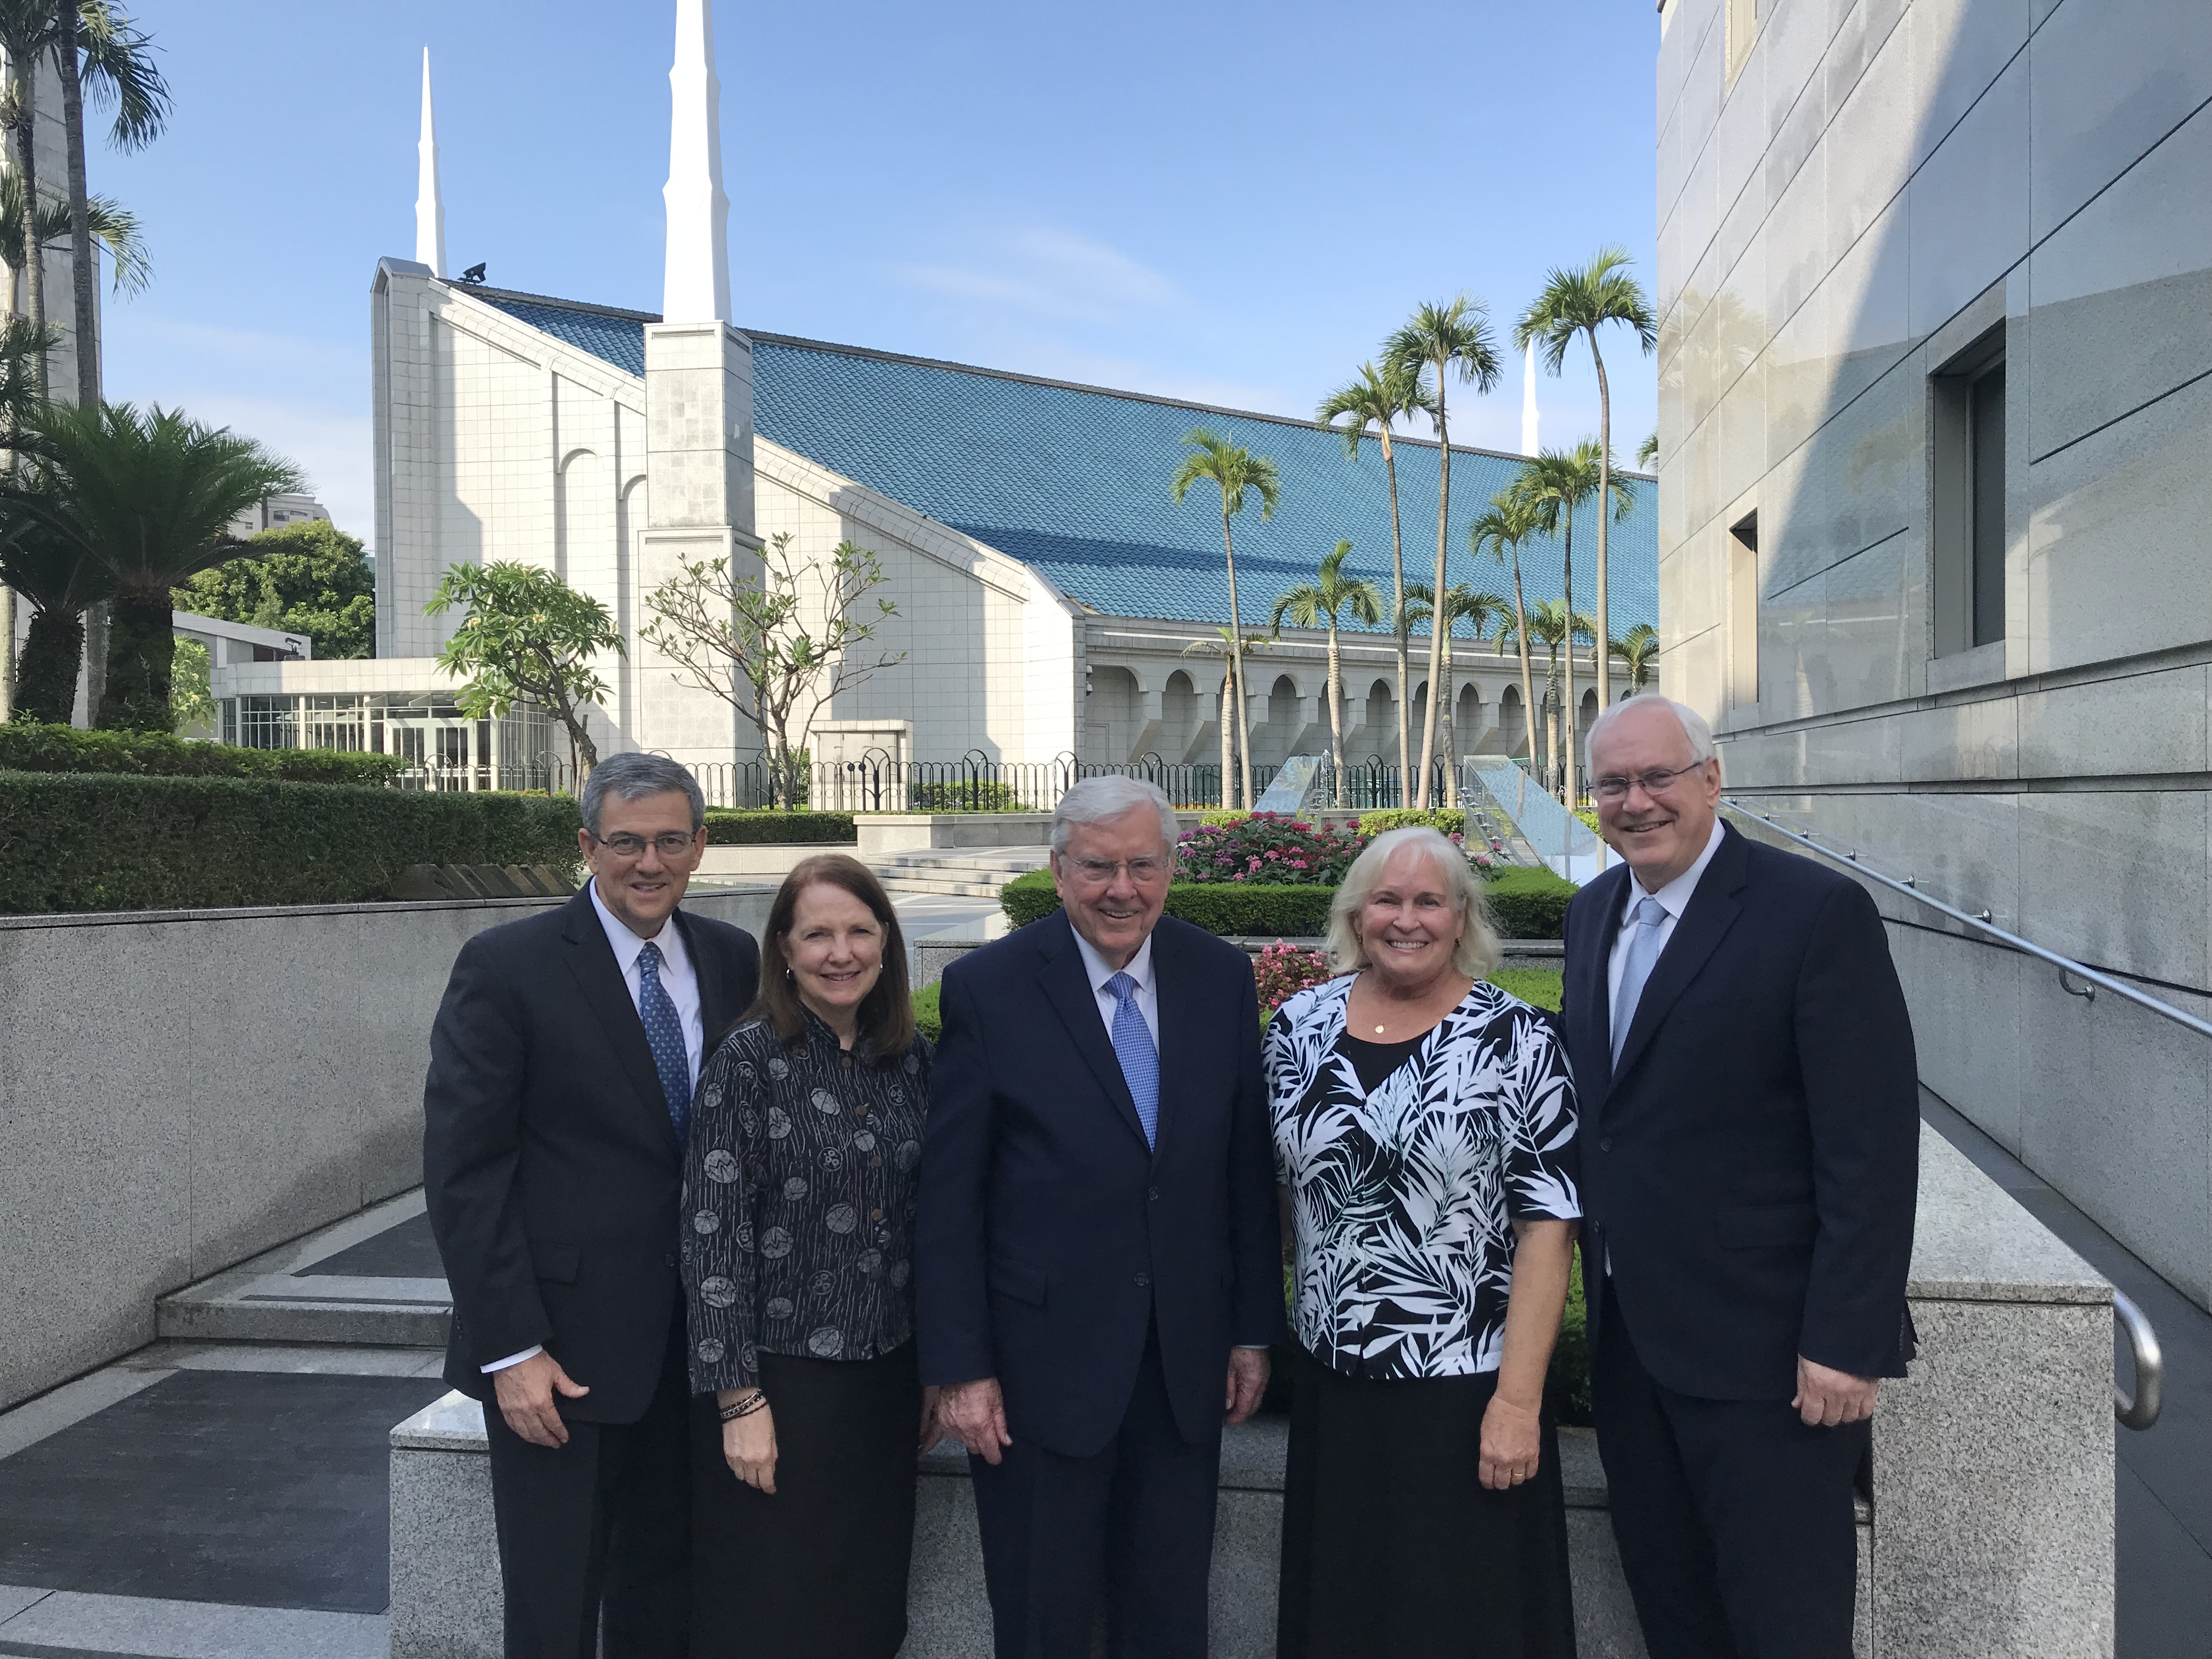 From left, Elder David F. Evans and his wife, Sister Mary Evans; President M. Russell Ballard; and Sister Lynette Gay and Elder Robert C. Gay pose outside of the temple in Taipei, Taiwan, in May 2019.